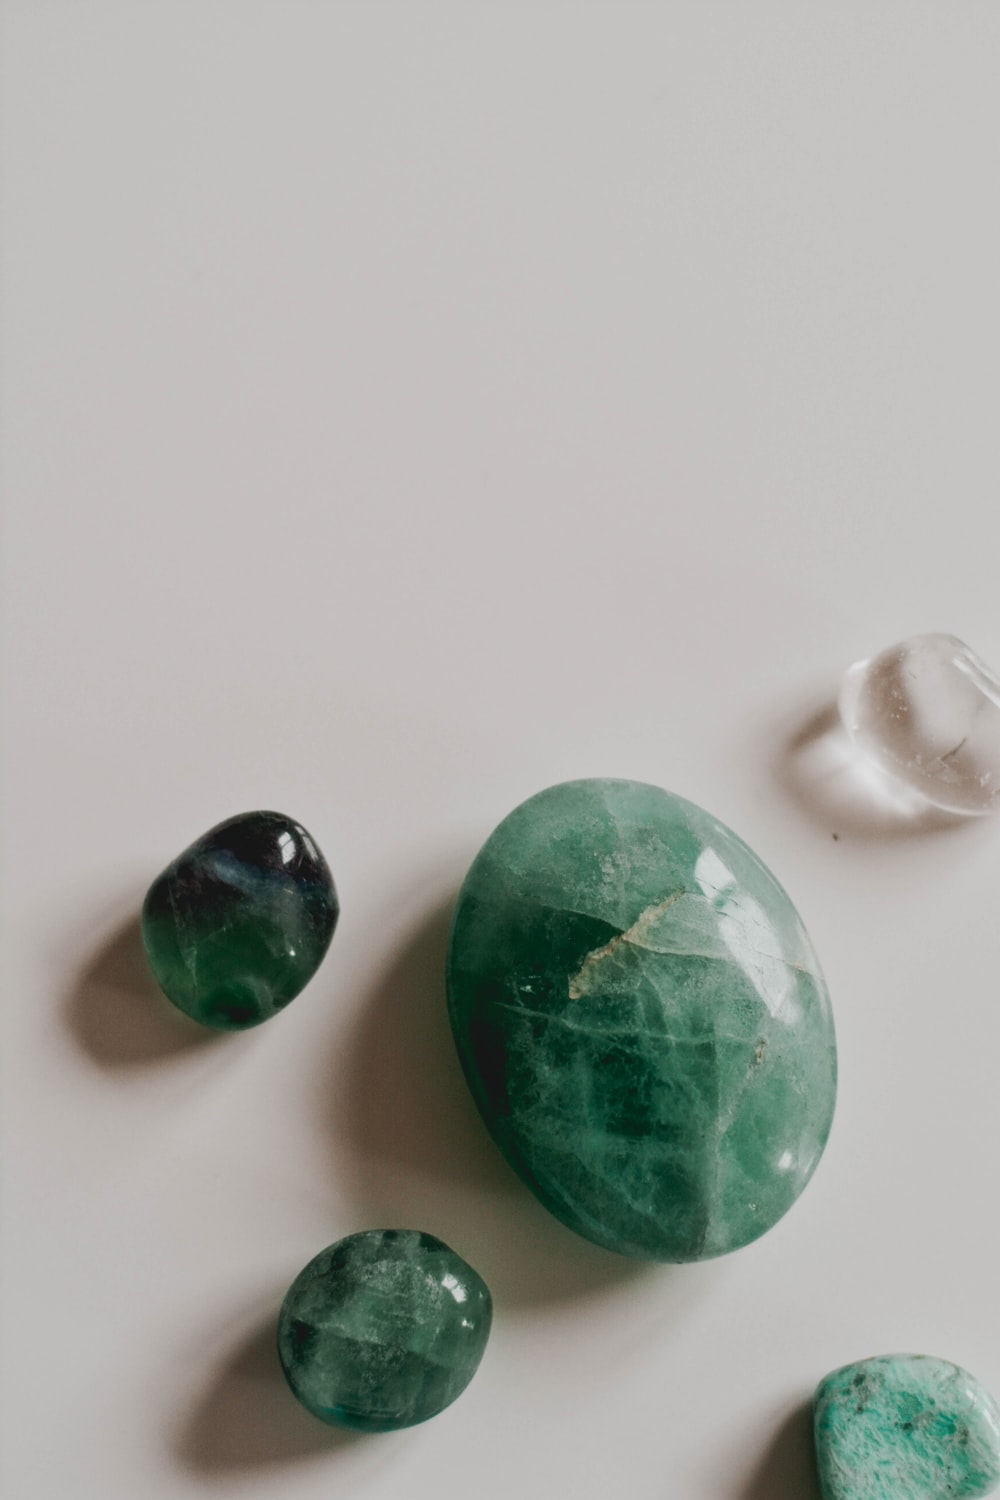 green and white marble toys